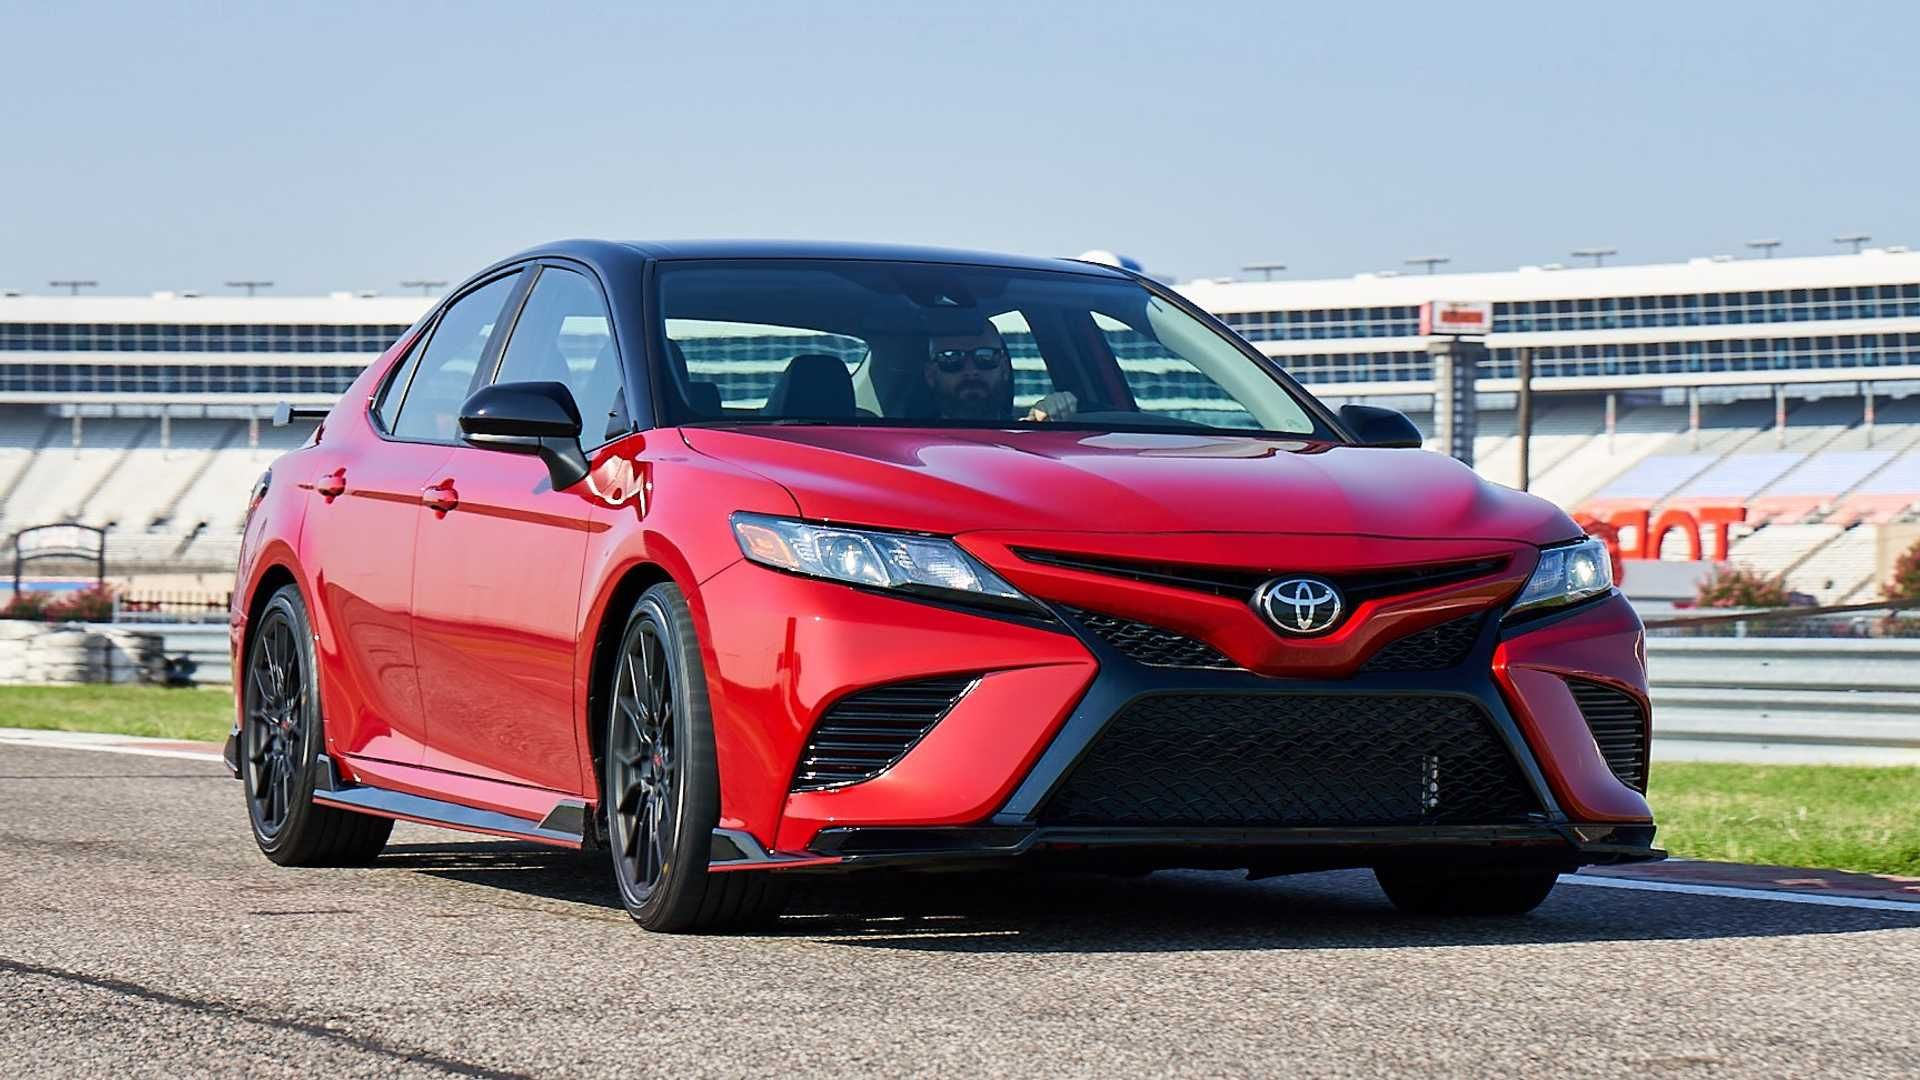 Powerful Daily Driver Cars You Can Buy For Cheap